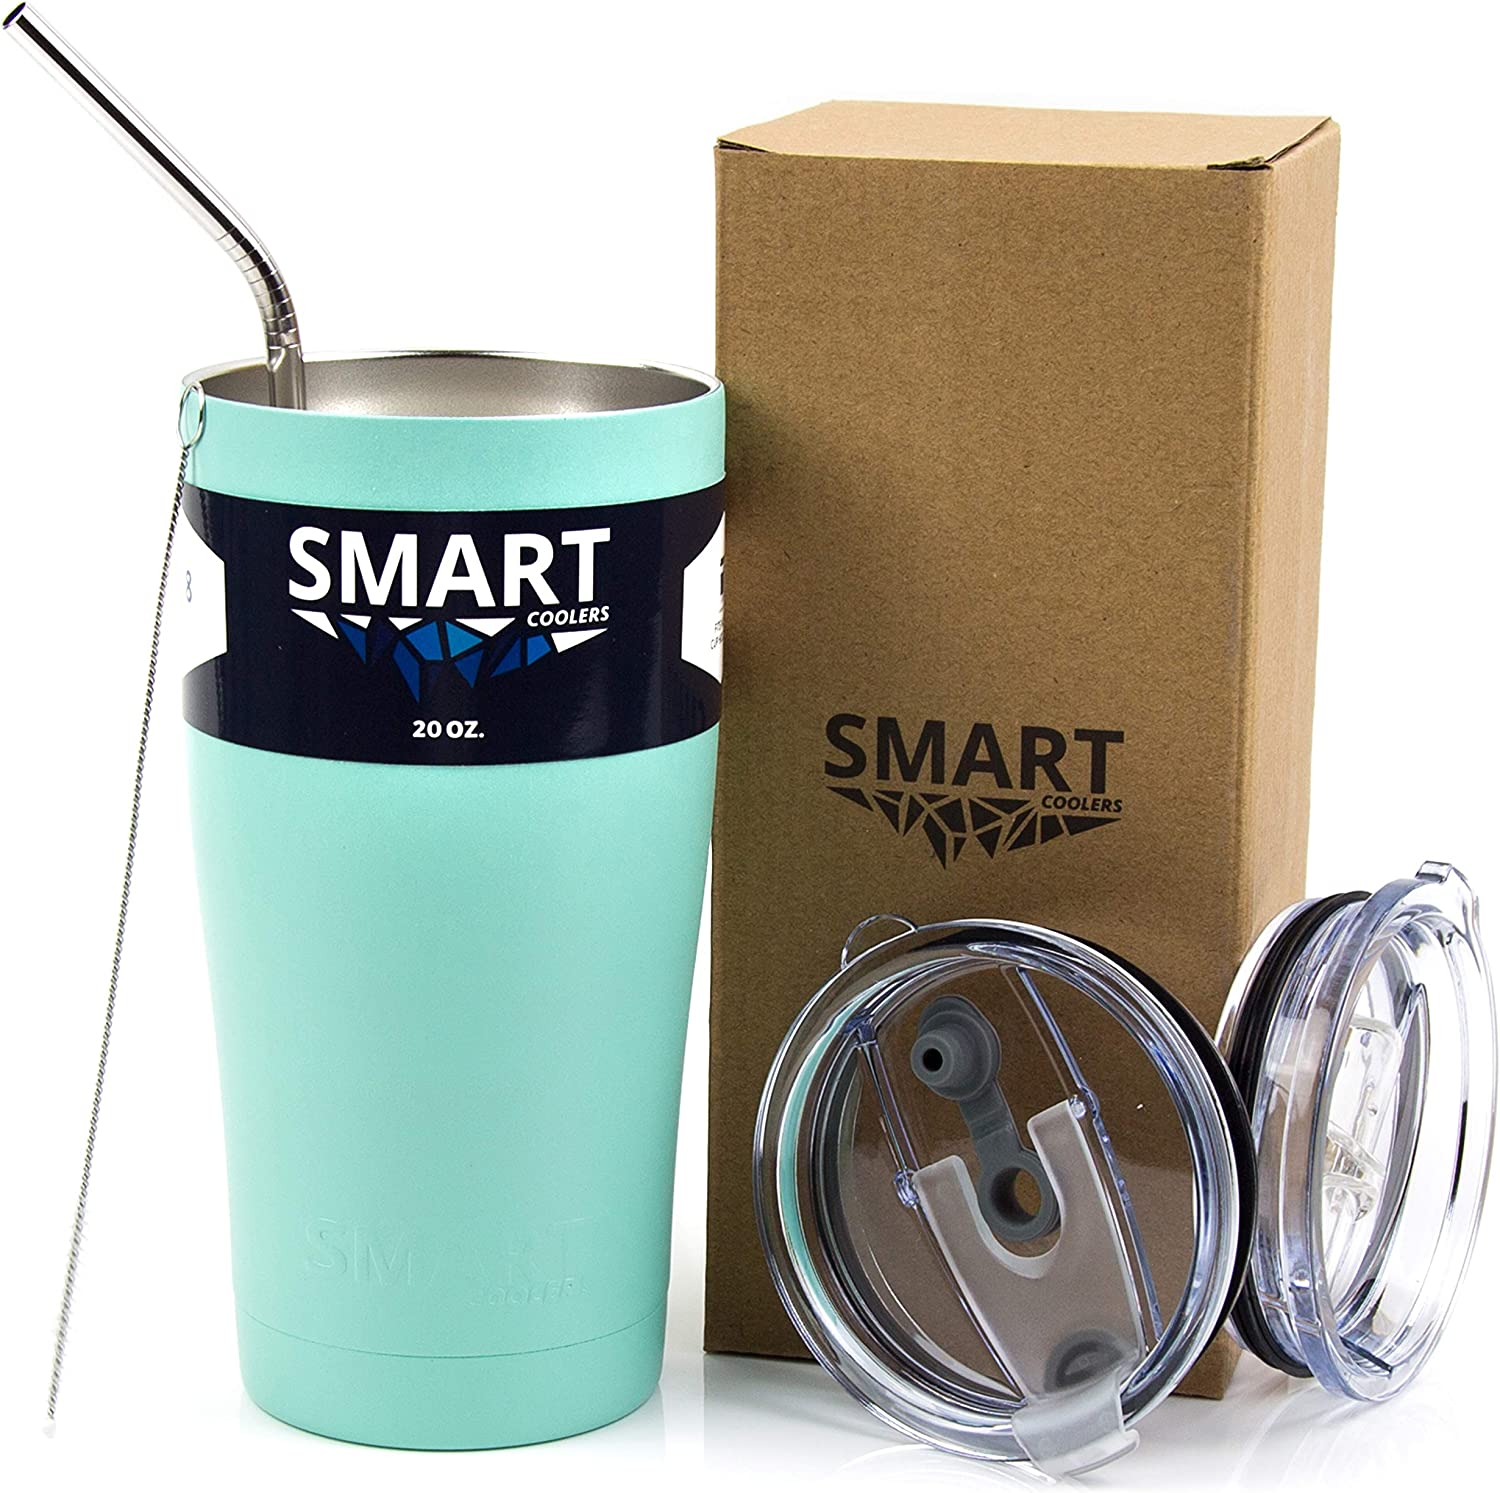 Smart Cooler 20 Oz. Sweat Free Ultra-Tough Double Wall Stainless Steel Tumbler Cup with Leak-proof Heavy Duty Tumbler Lids (Slide Lid & Flip Lid), Straw, Cleaning Brush - Seamist